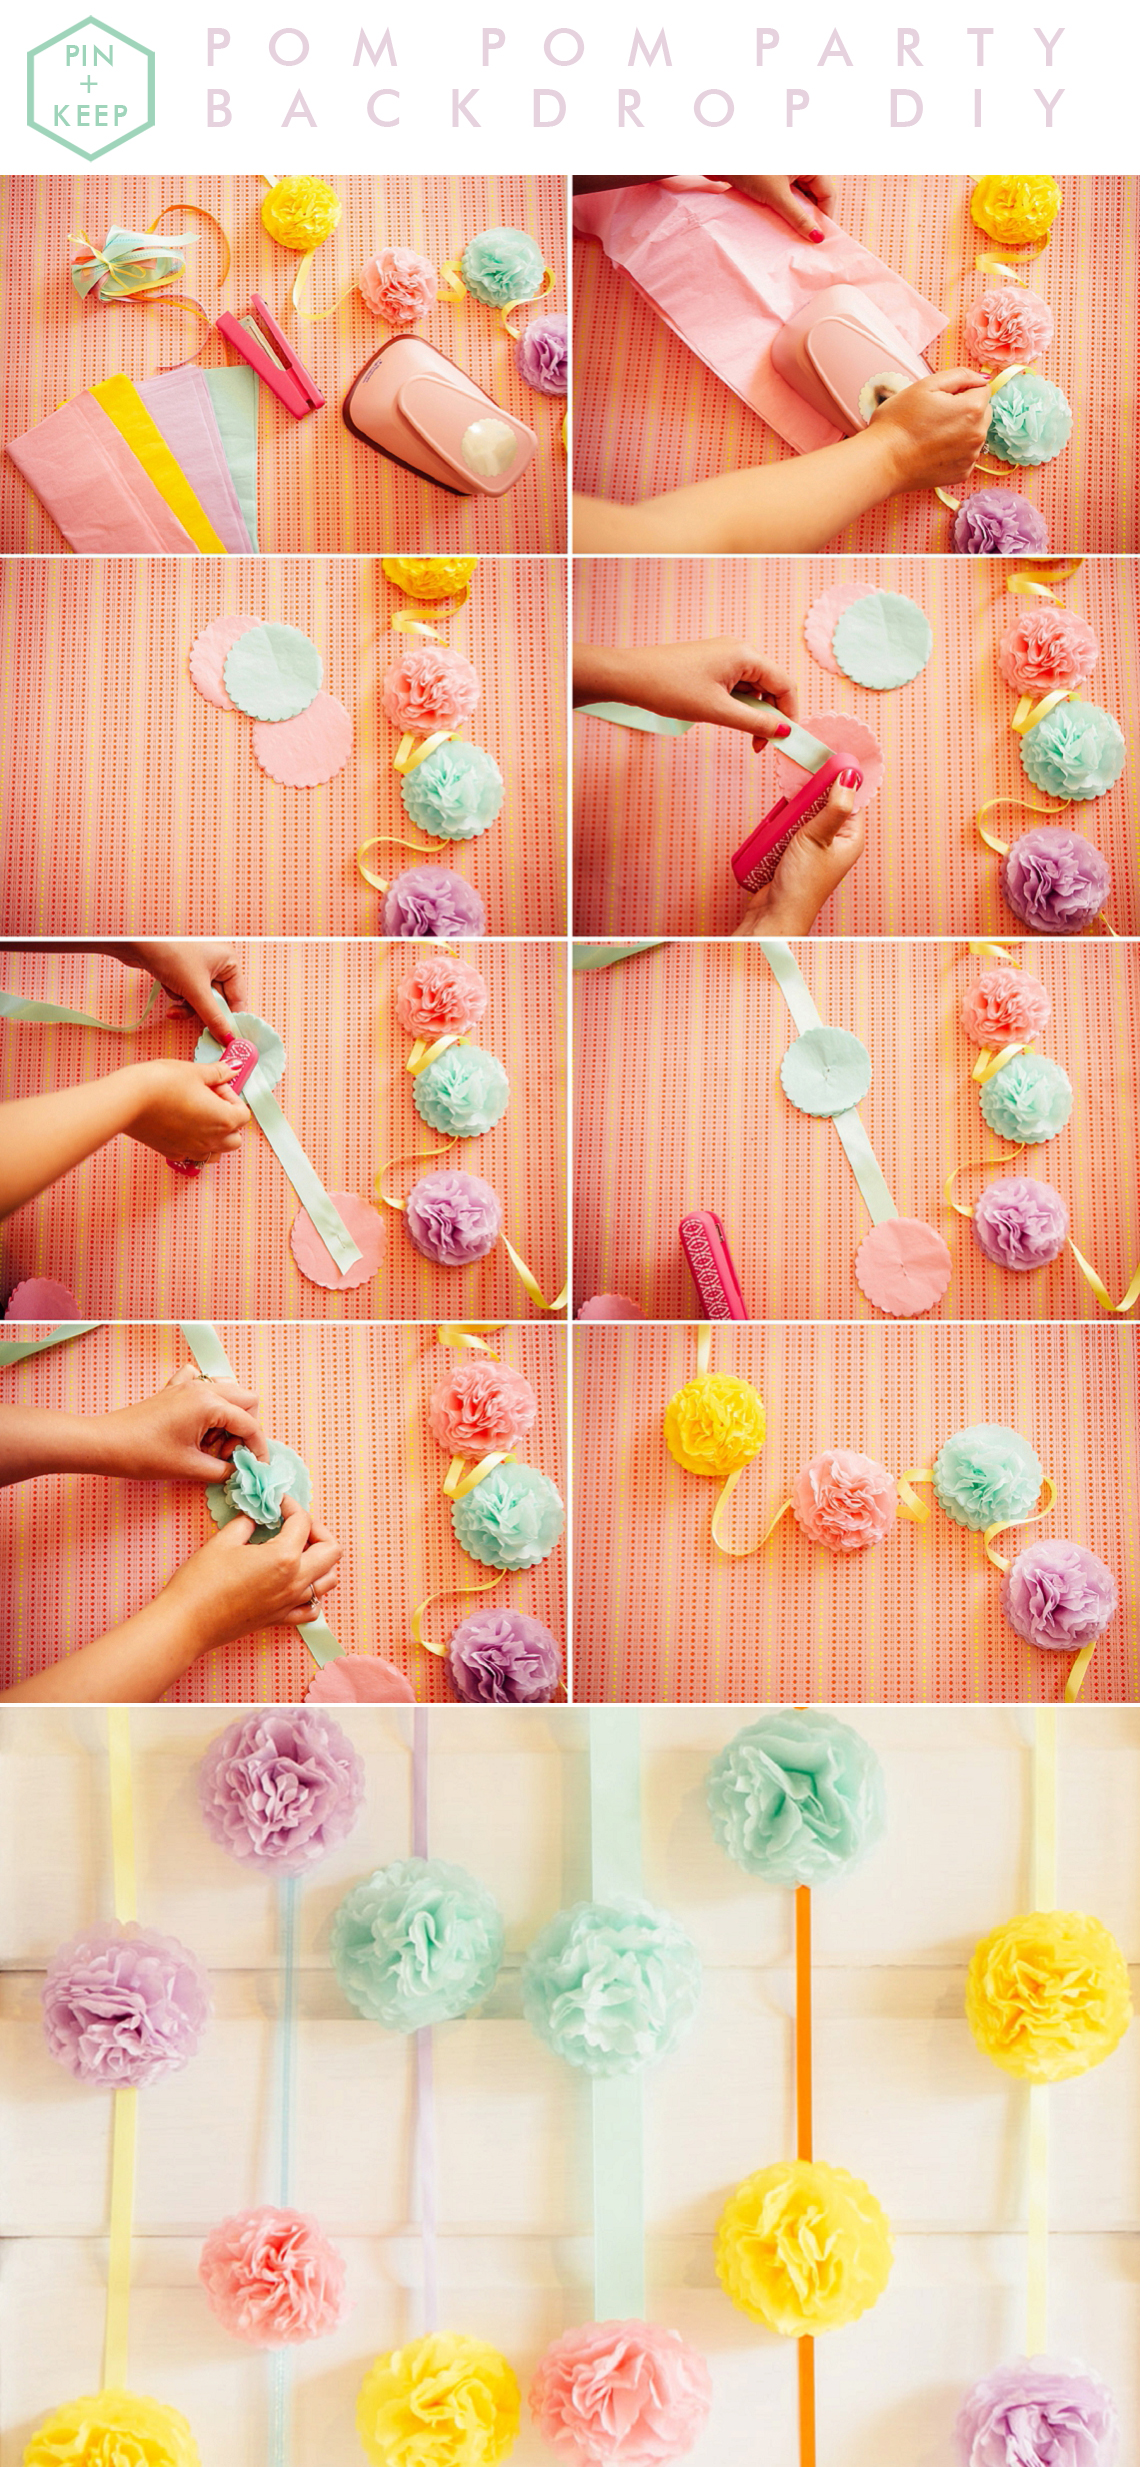 Wedding Party DIY Pom Pom Garland Backdrop by Hip Hip Hooray for BLOVED Blog